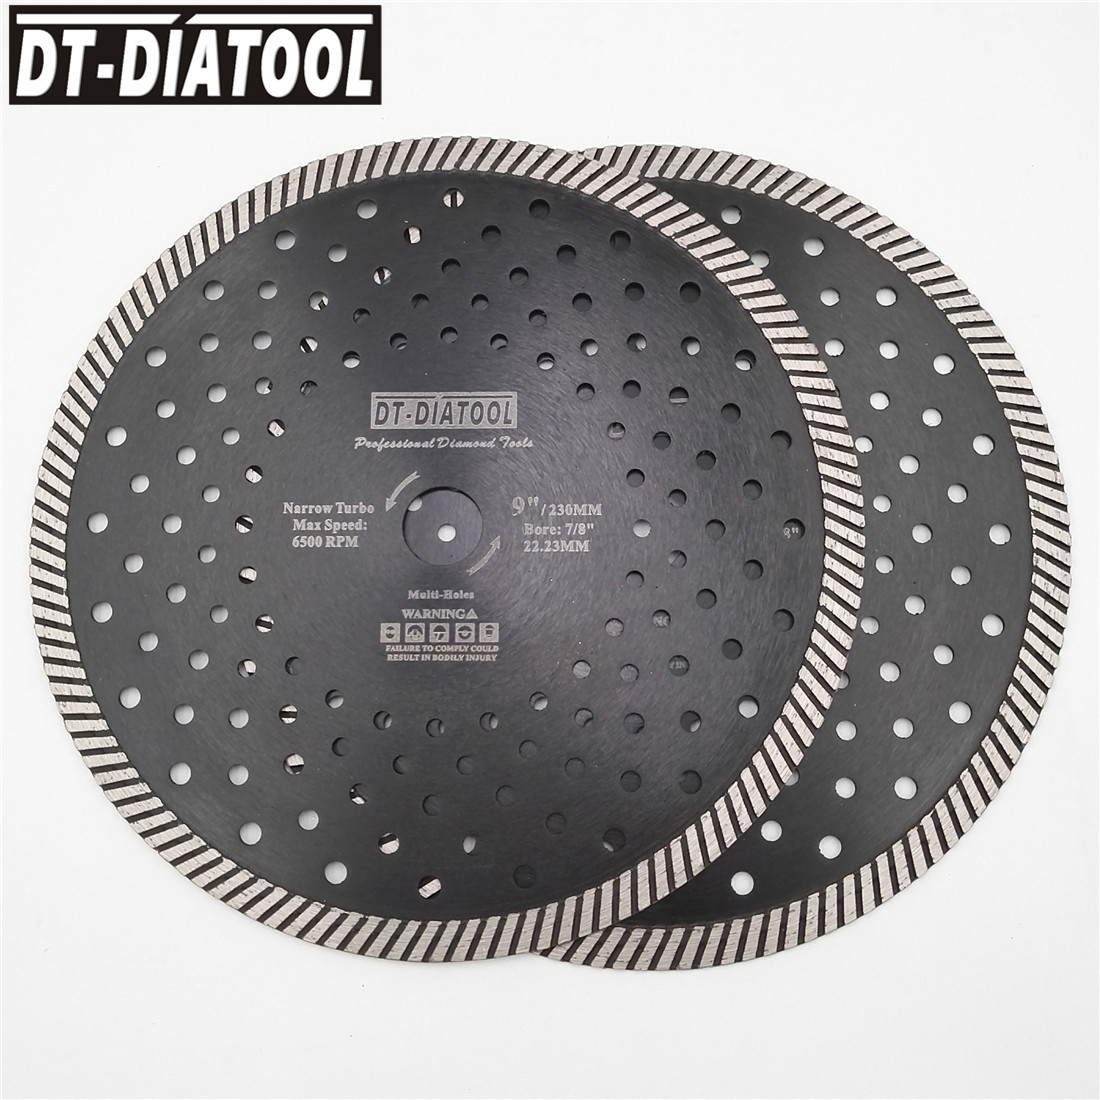 9 Inch DT-DIATOOL 2pcs 230MM Hot Pressed Narrow Turbo Diamond Blade Cutting Disc 10mm Segment Height Saw Blade For Grinder